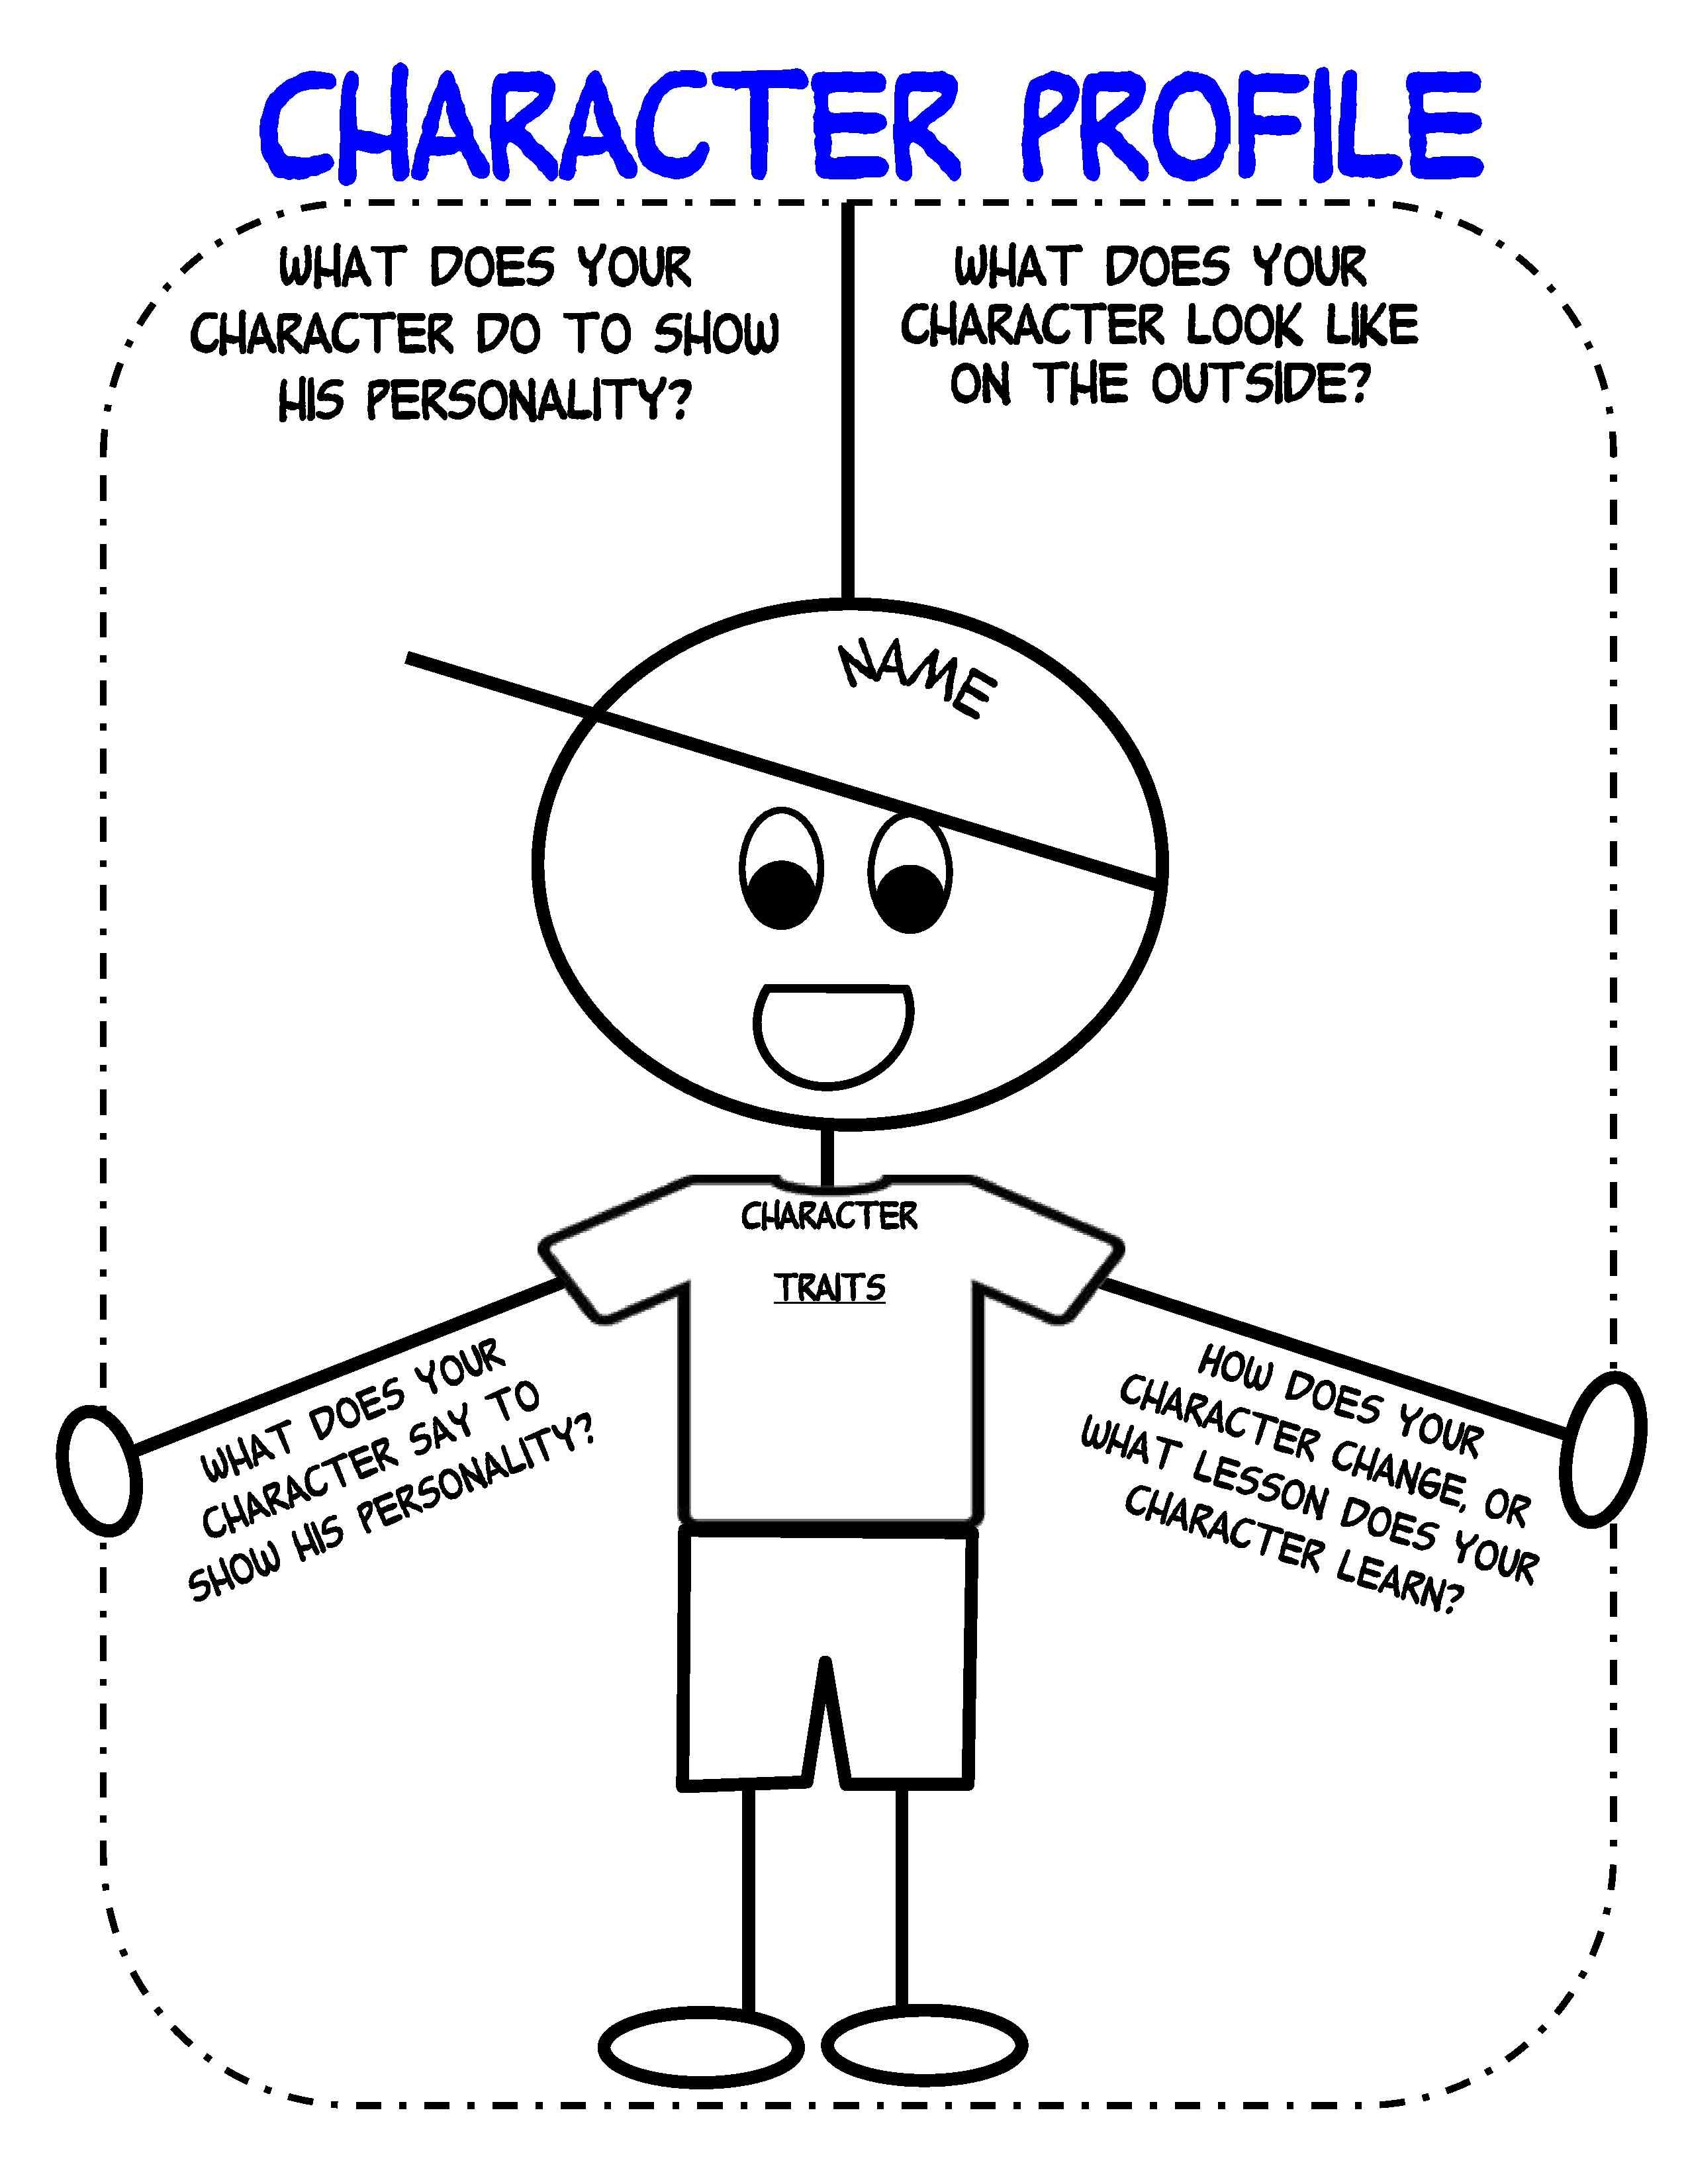 Bringing Characters To Life In Writer's Workshop   Scholastic - Free Printable Character Traits Graphic Organizer